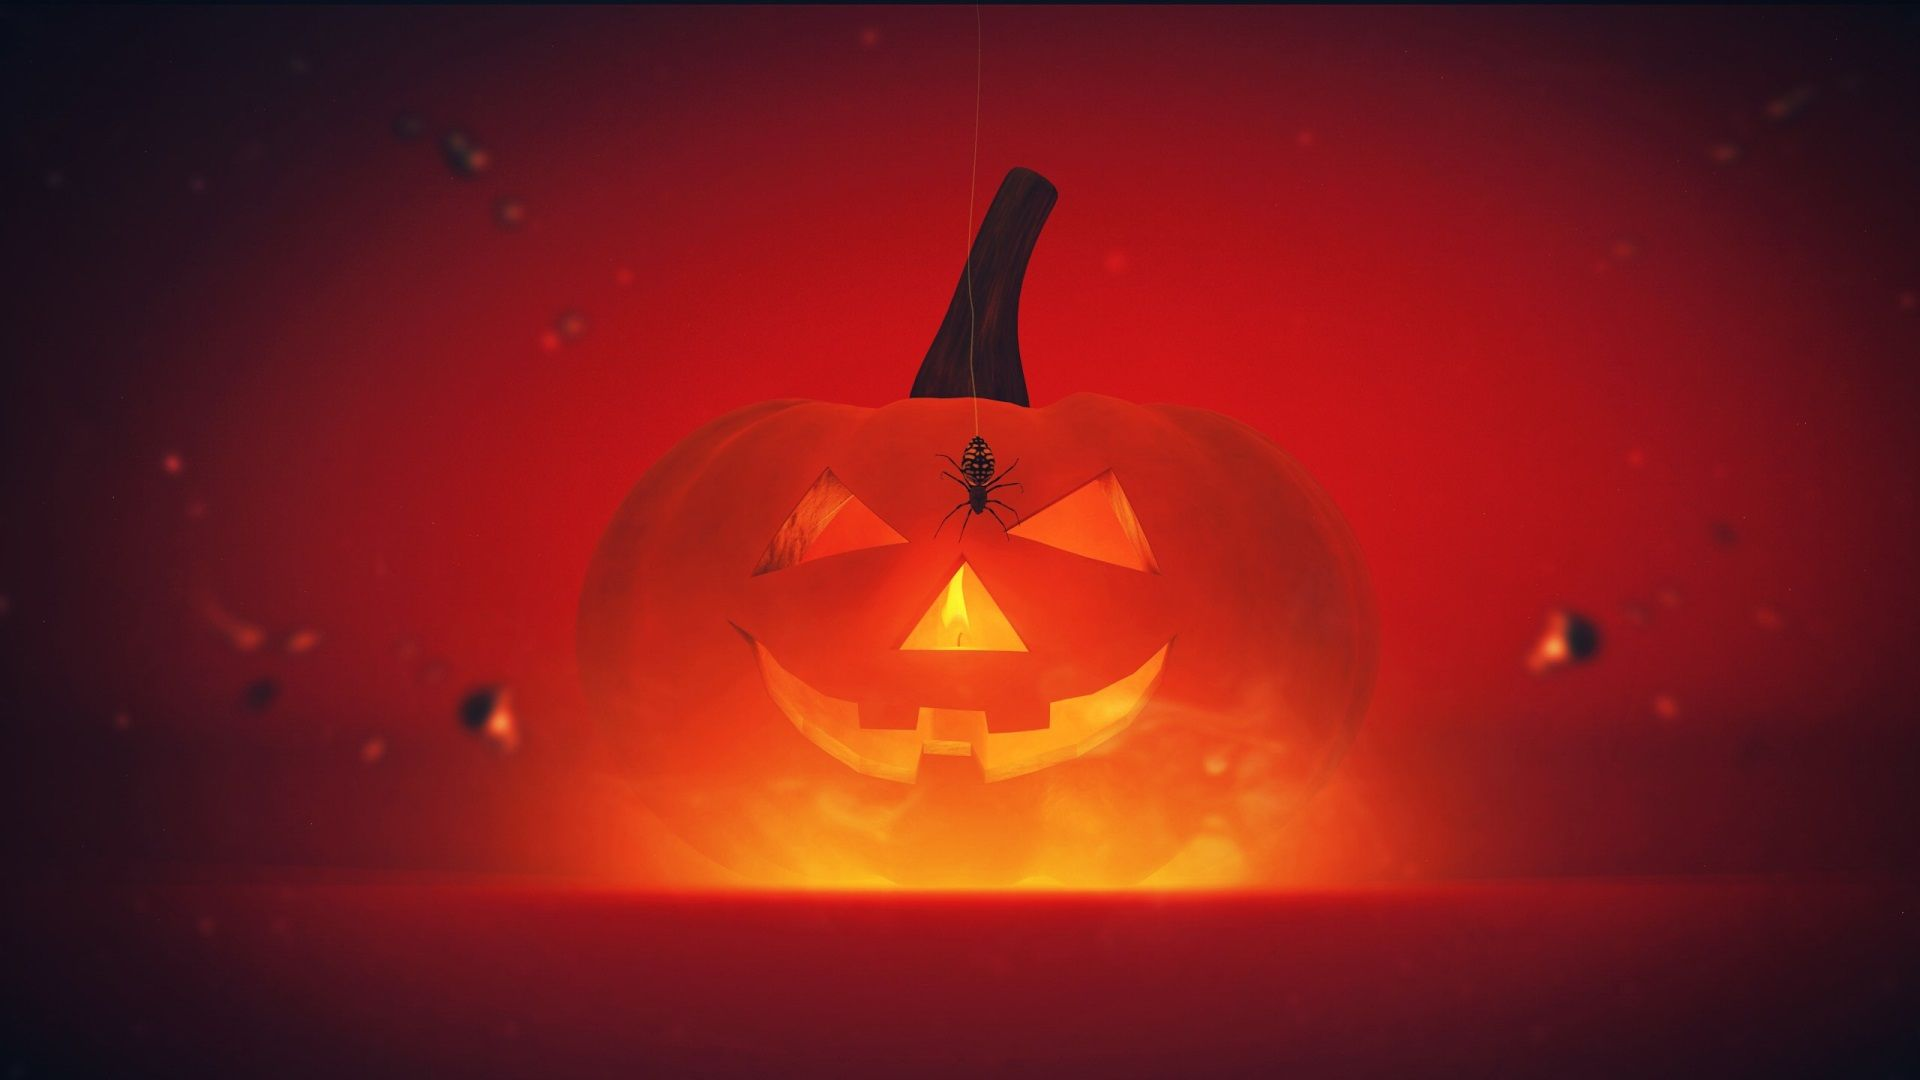 Cool Wallpaper Macbook Halloween - 935c56e642e148408a42ee5e8c667c85  Pictures_161965.jpg